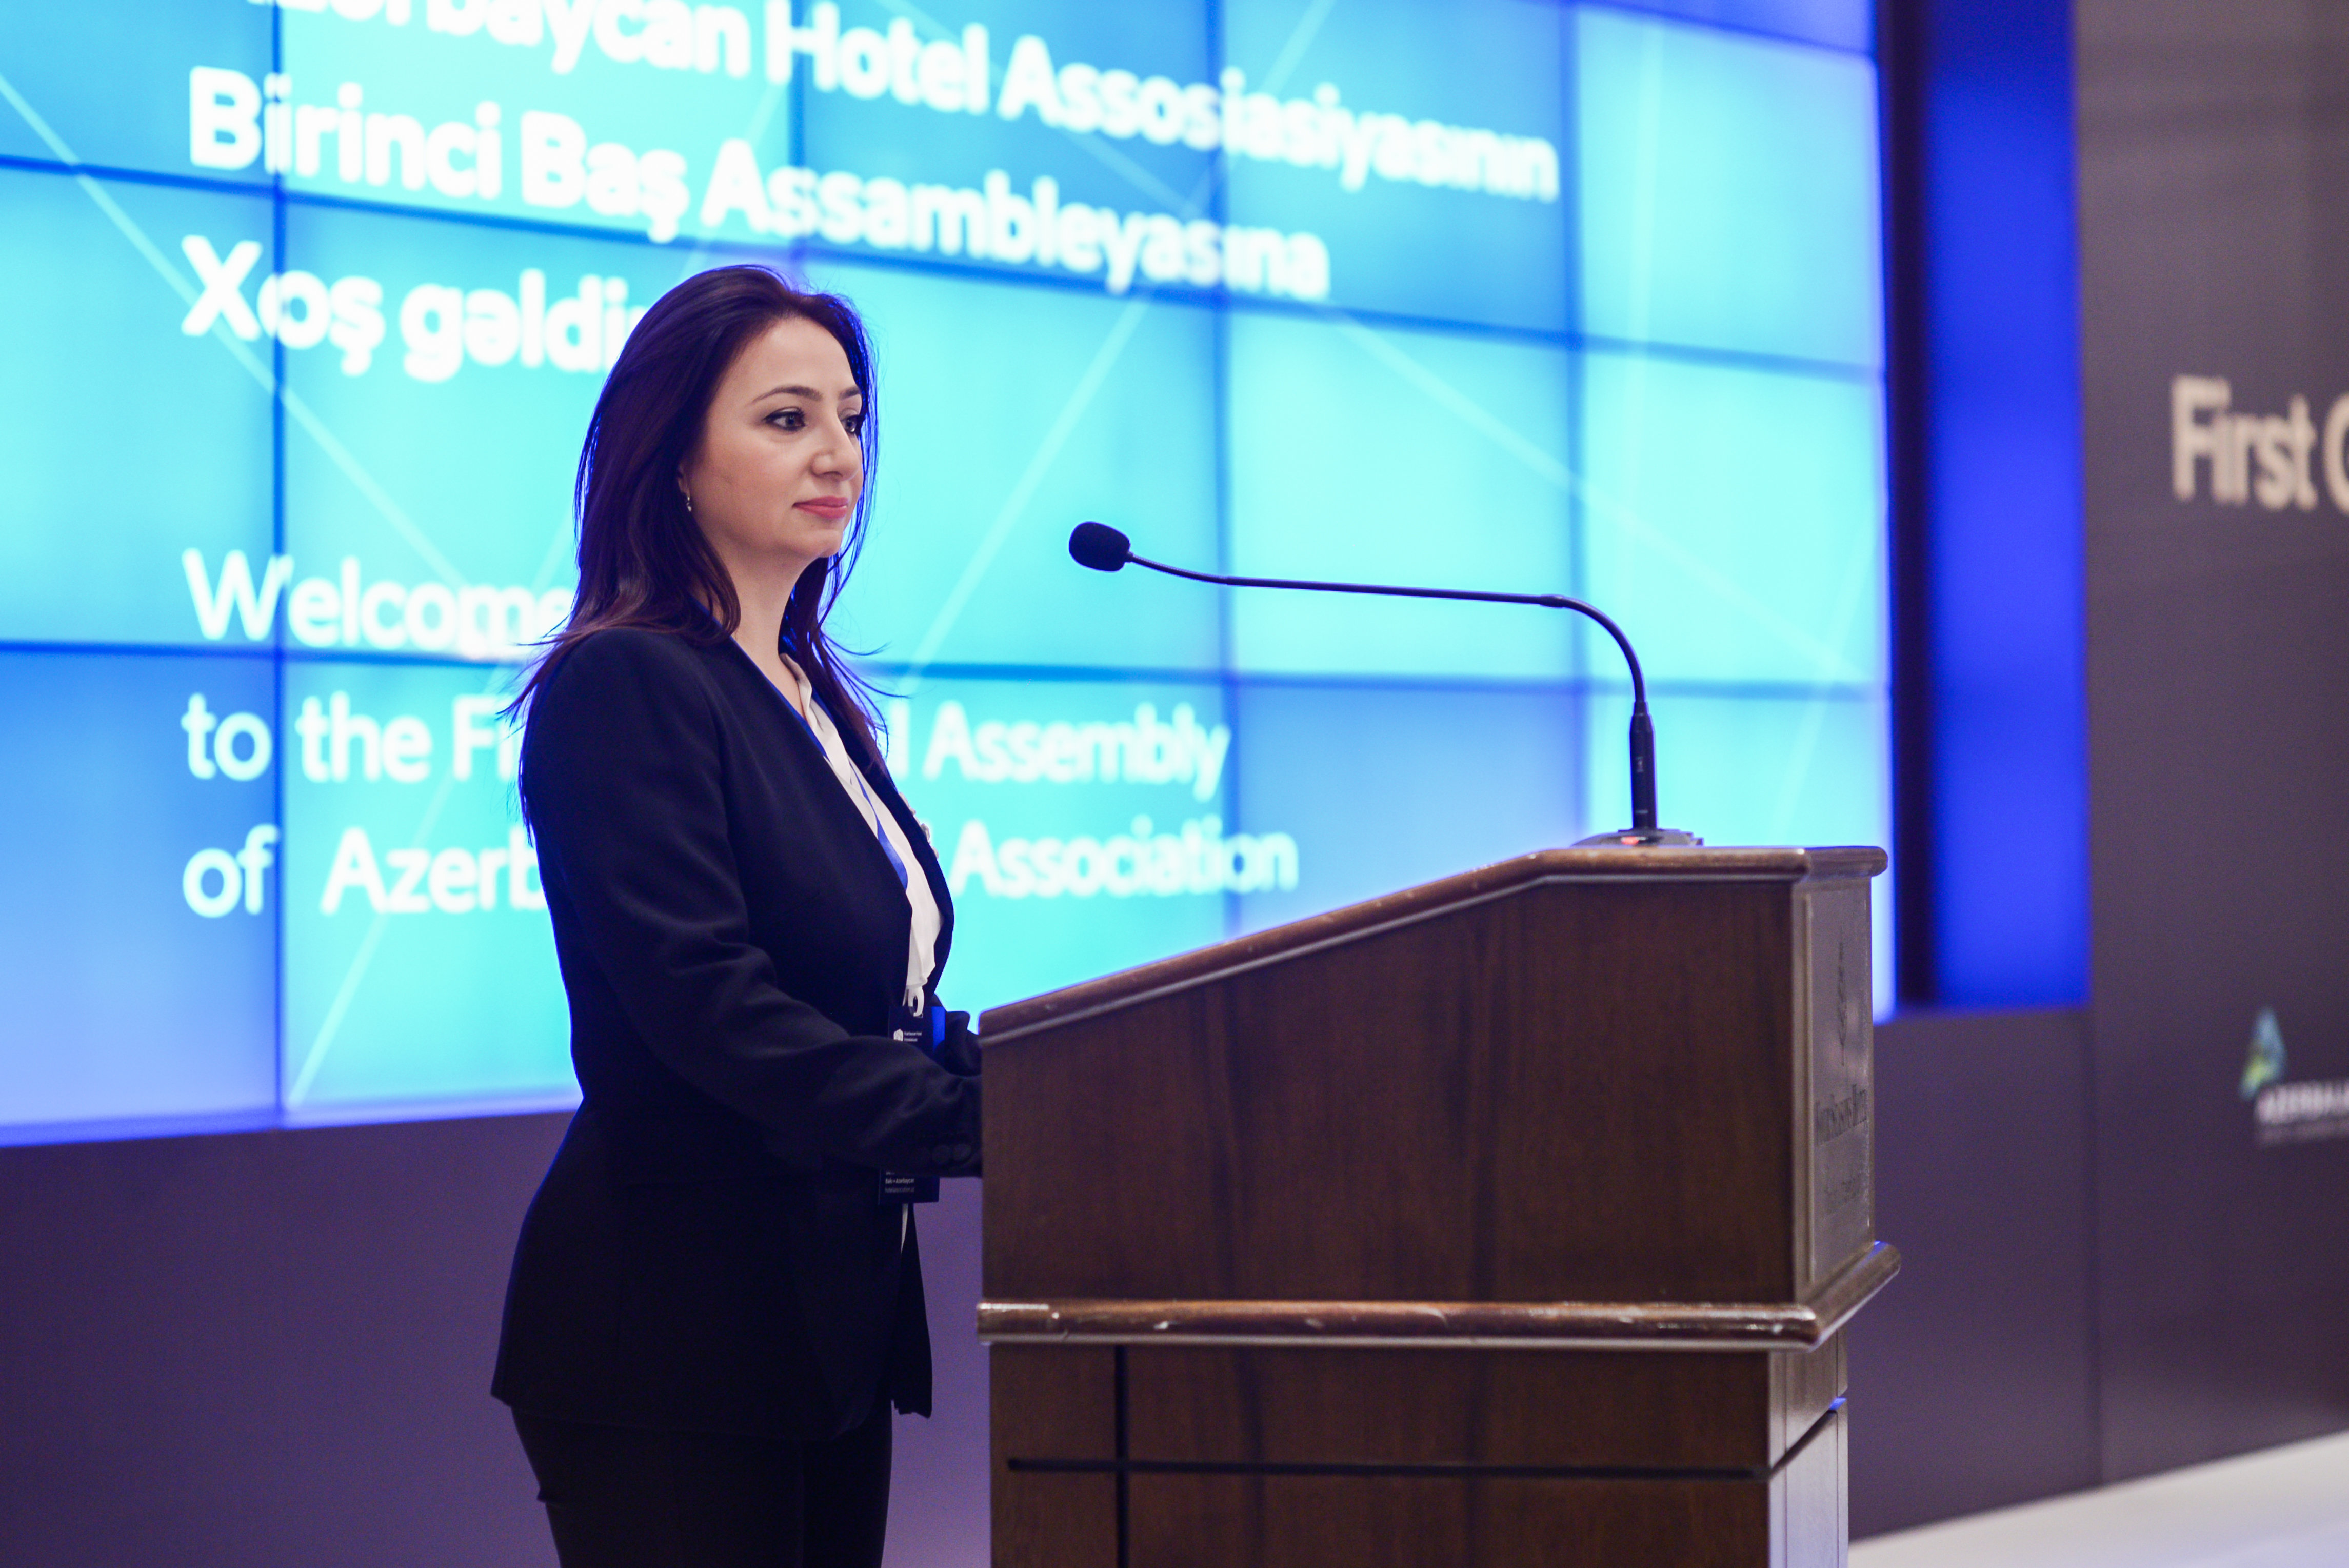 The First General Assembly of the Azerbaijan Hotels Association was held